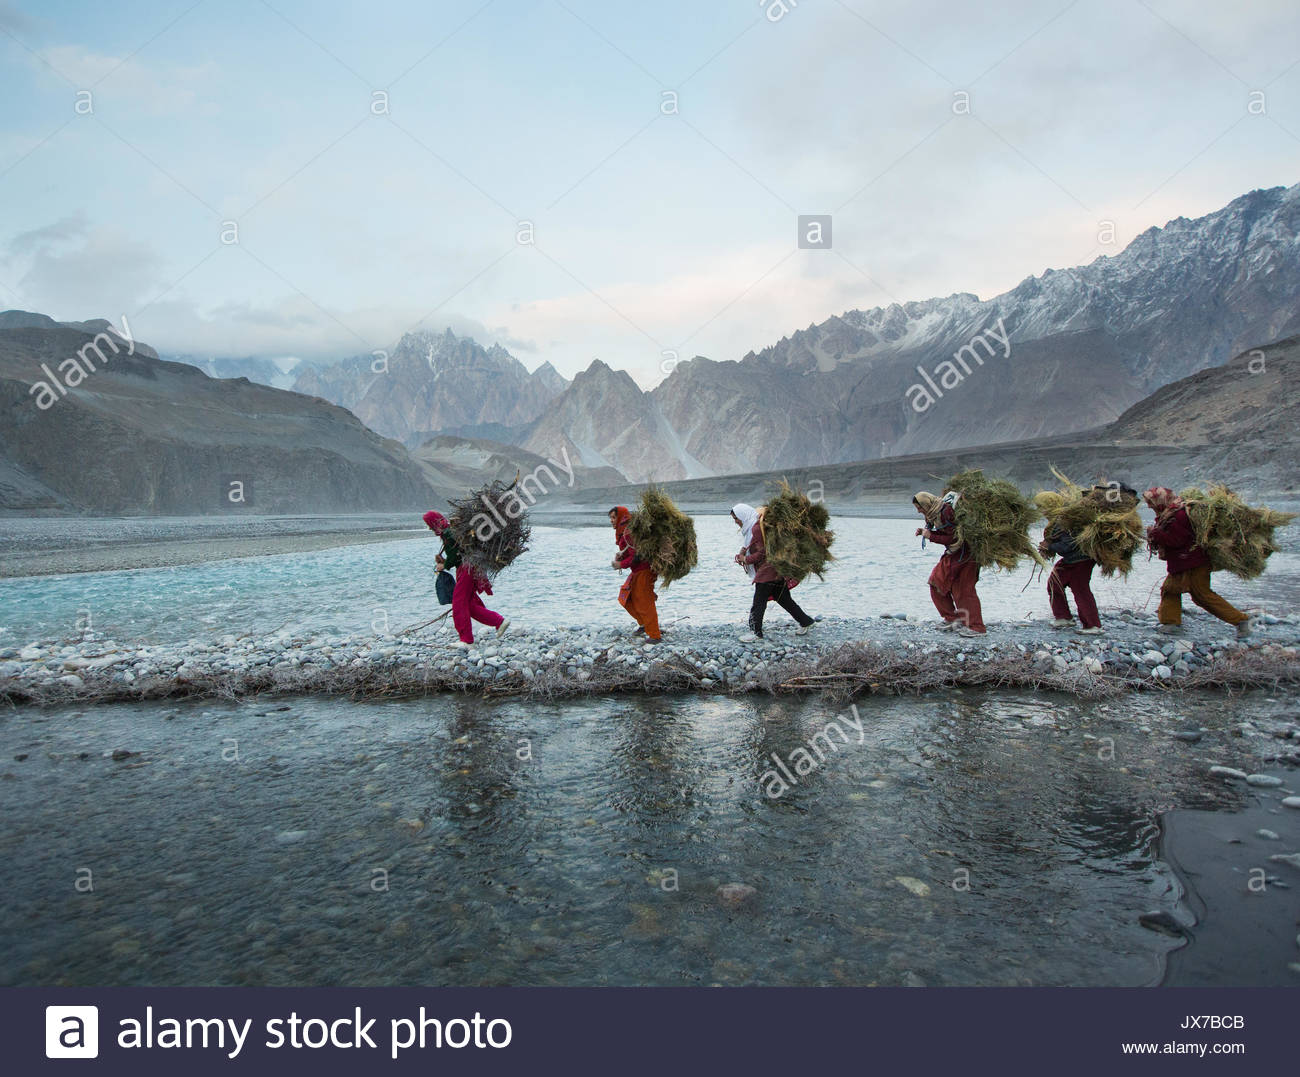 Women returning from getting wood for cooking and heating and hay to feed their livestock, a two hour walk. Stock Photo